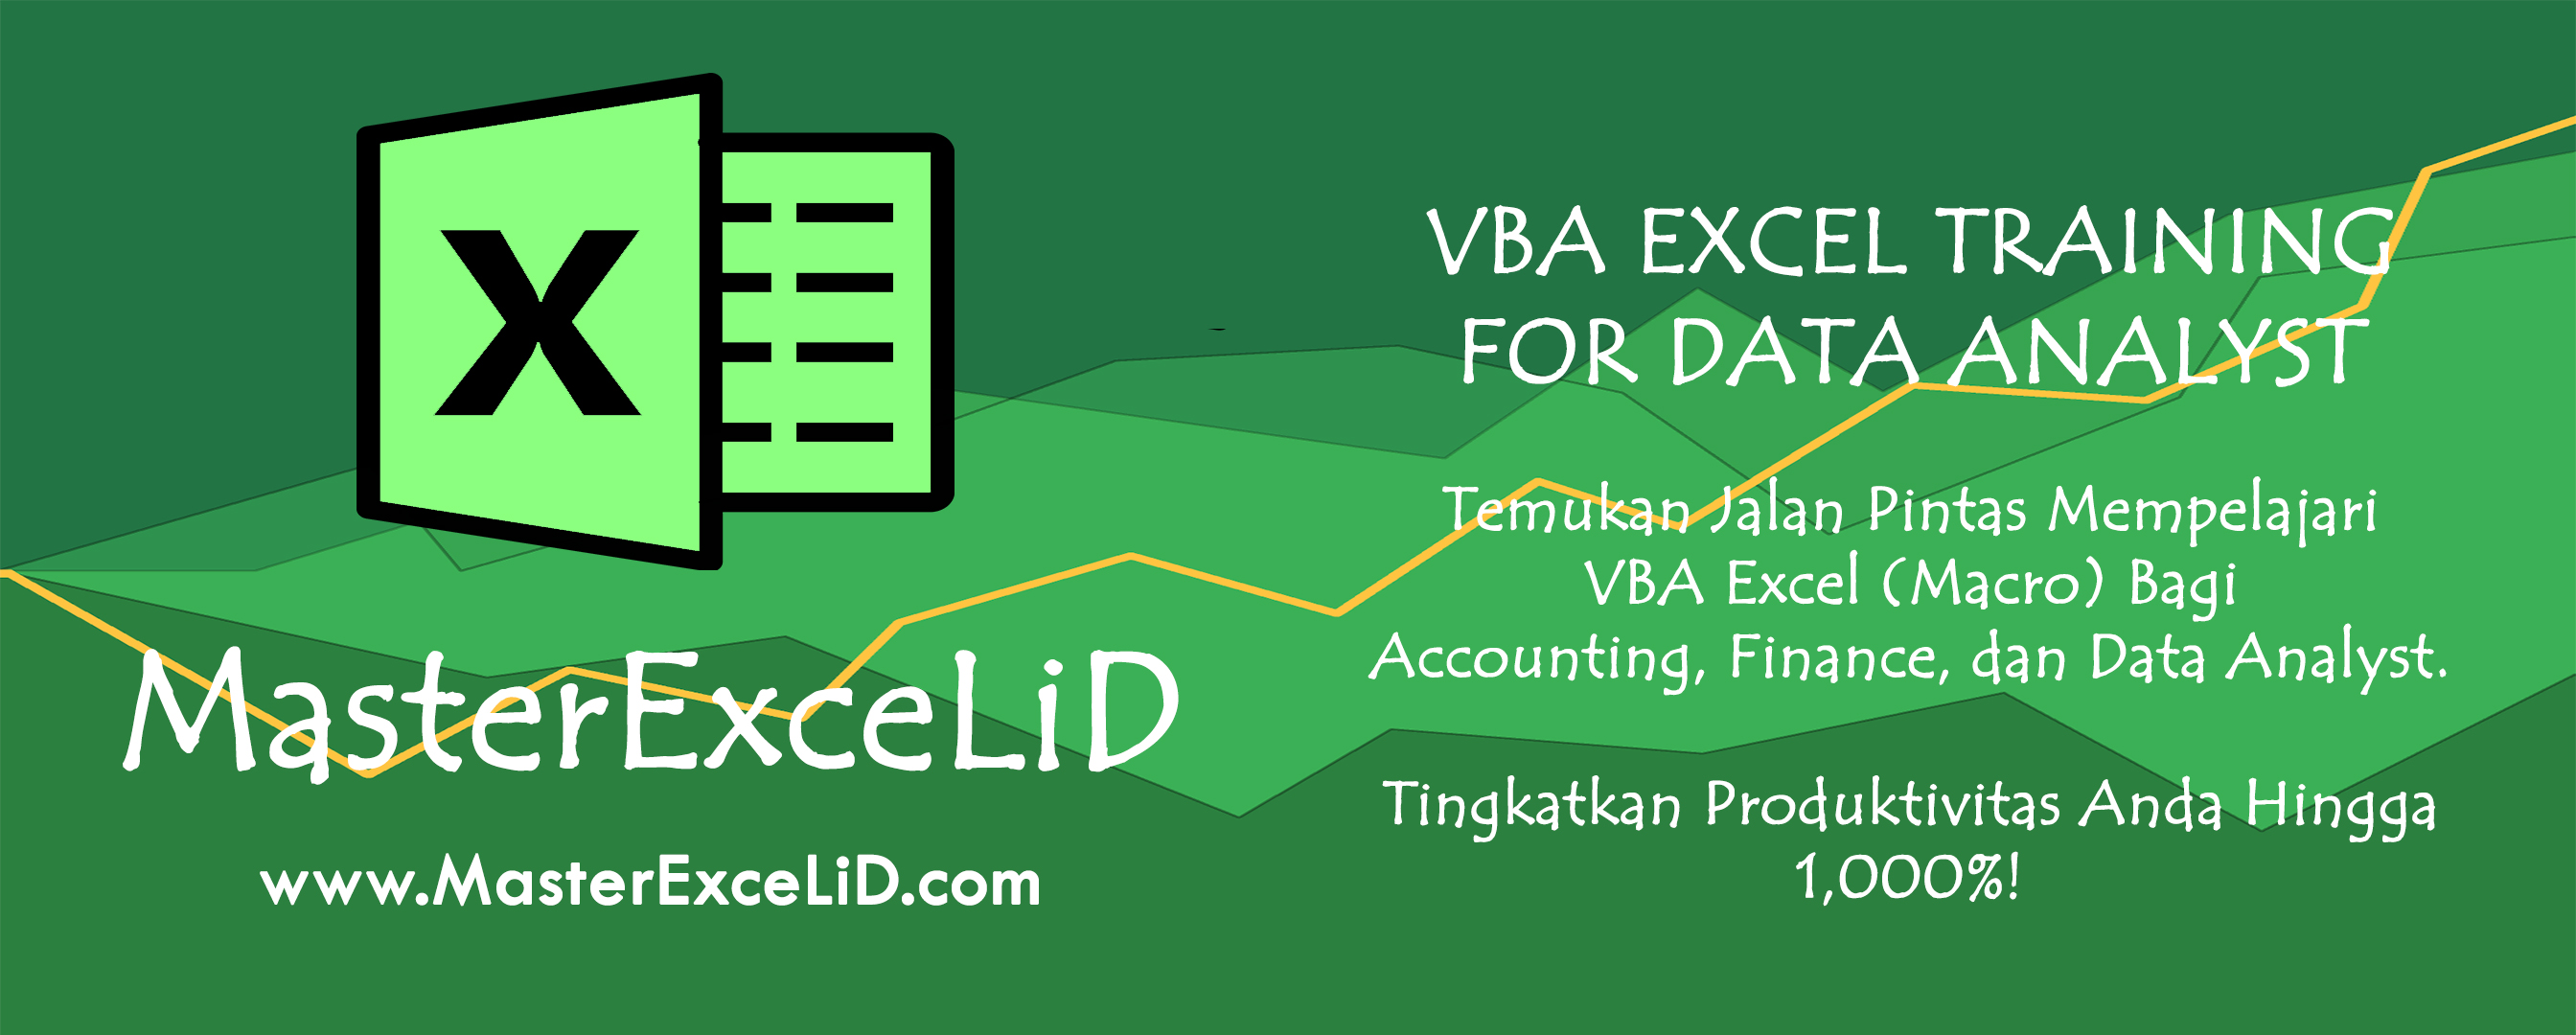 Weekend Macro Vba Excel Training For Data Processing